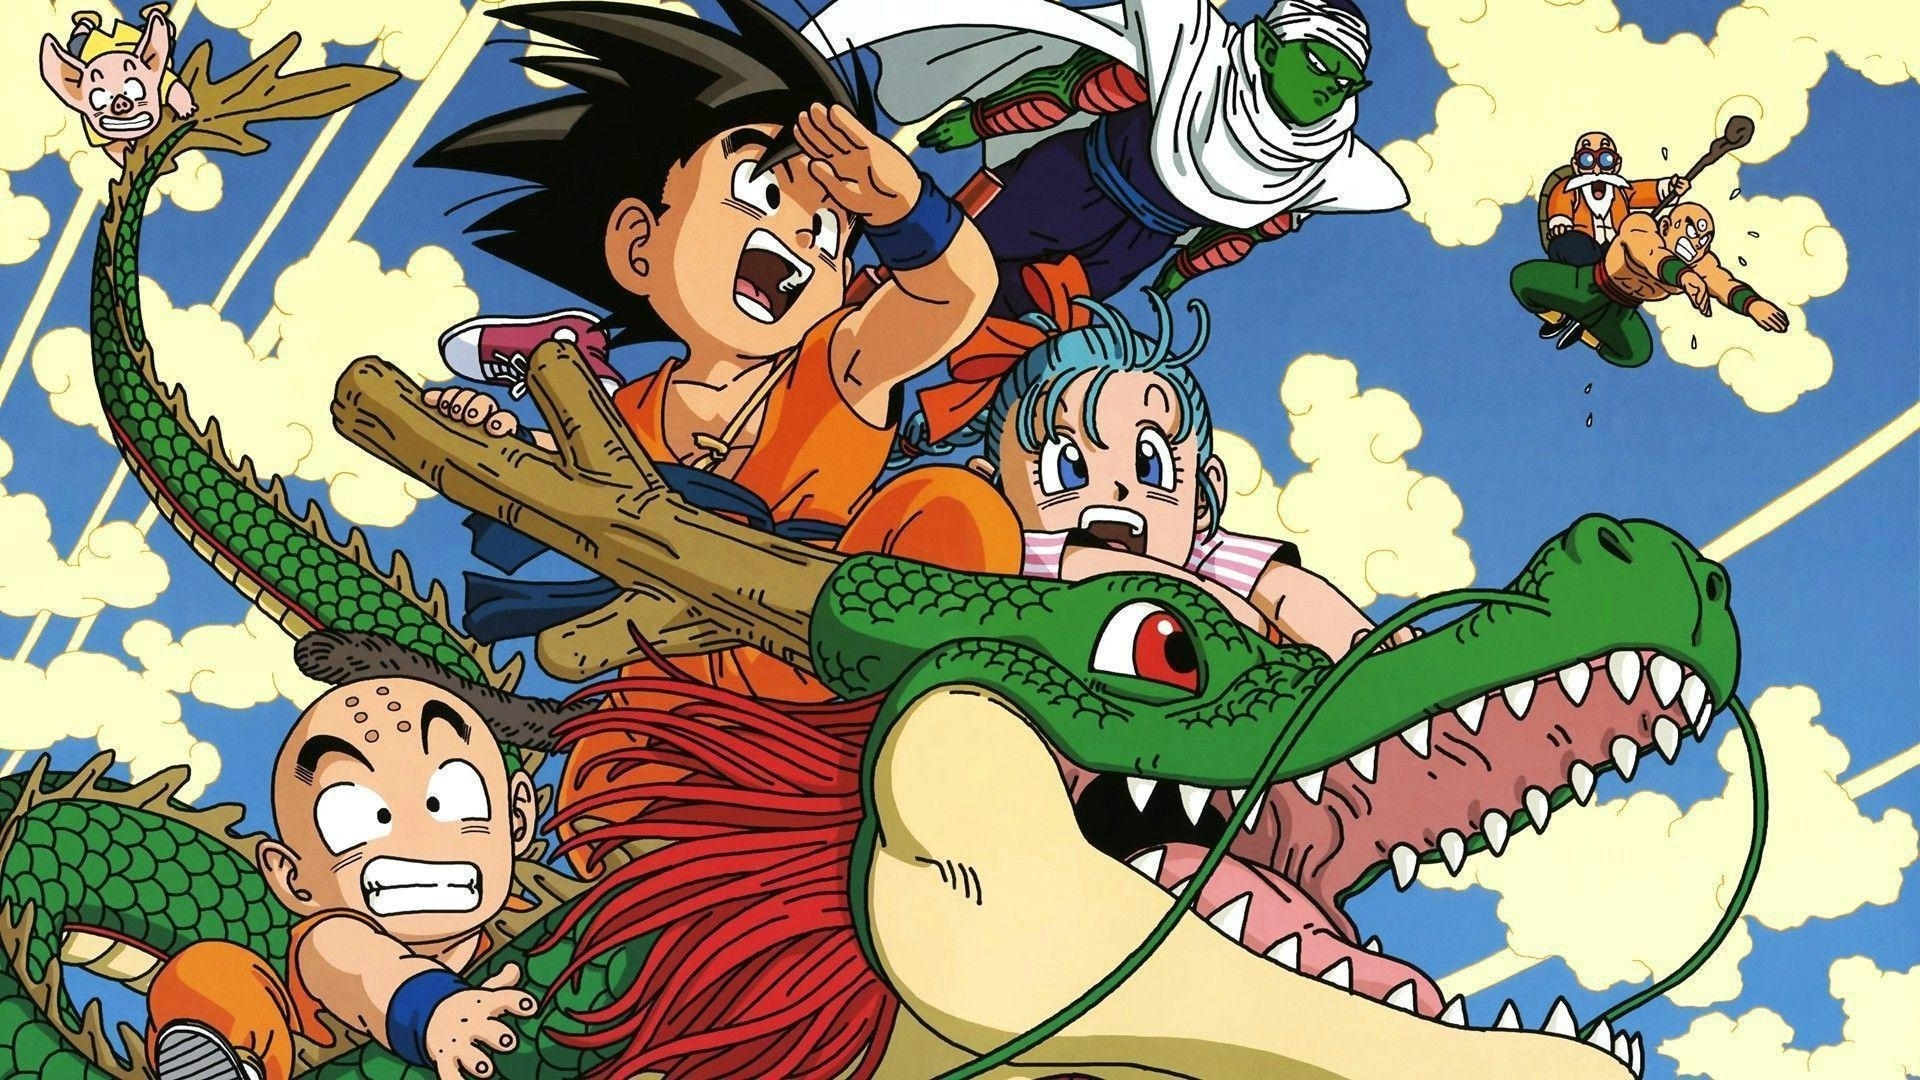 dragon ball manga series wallpapers - wallpaper cave